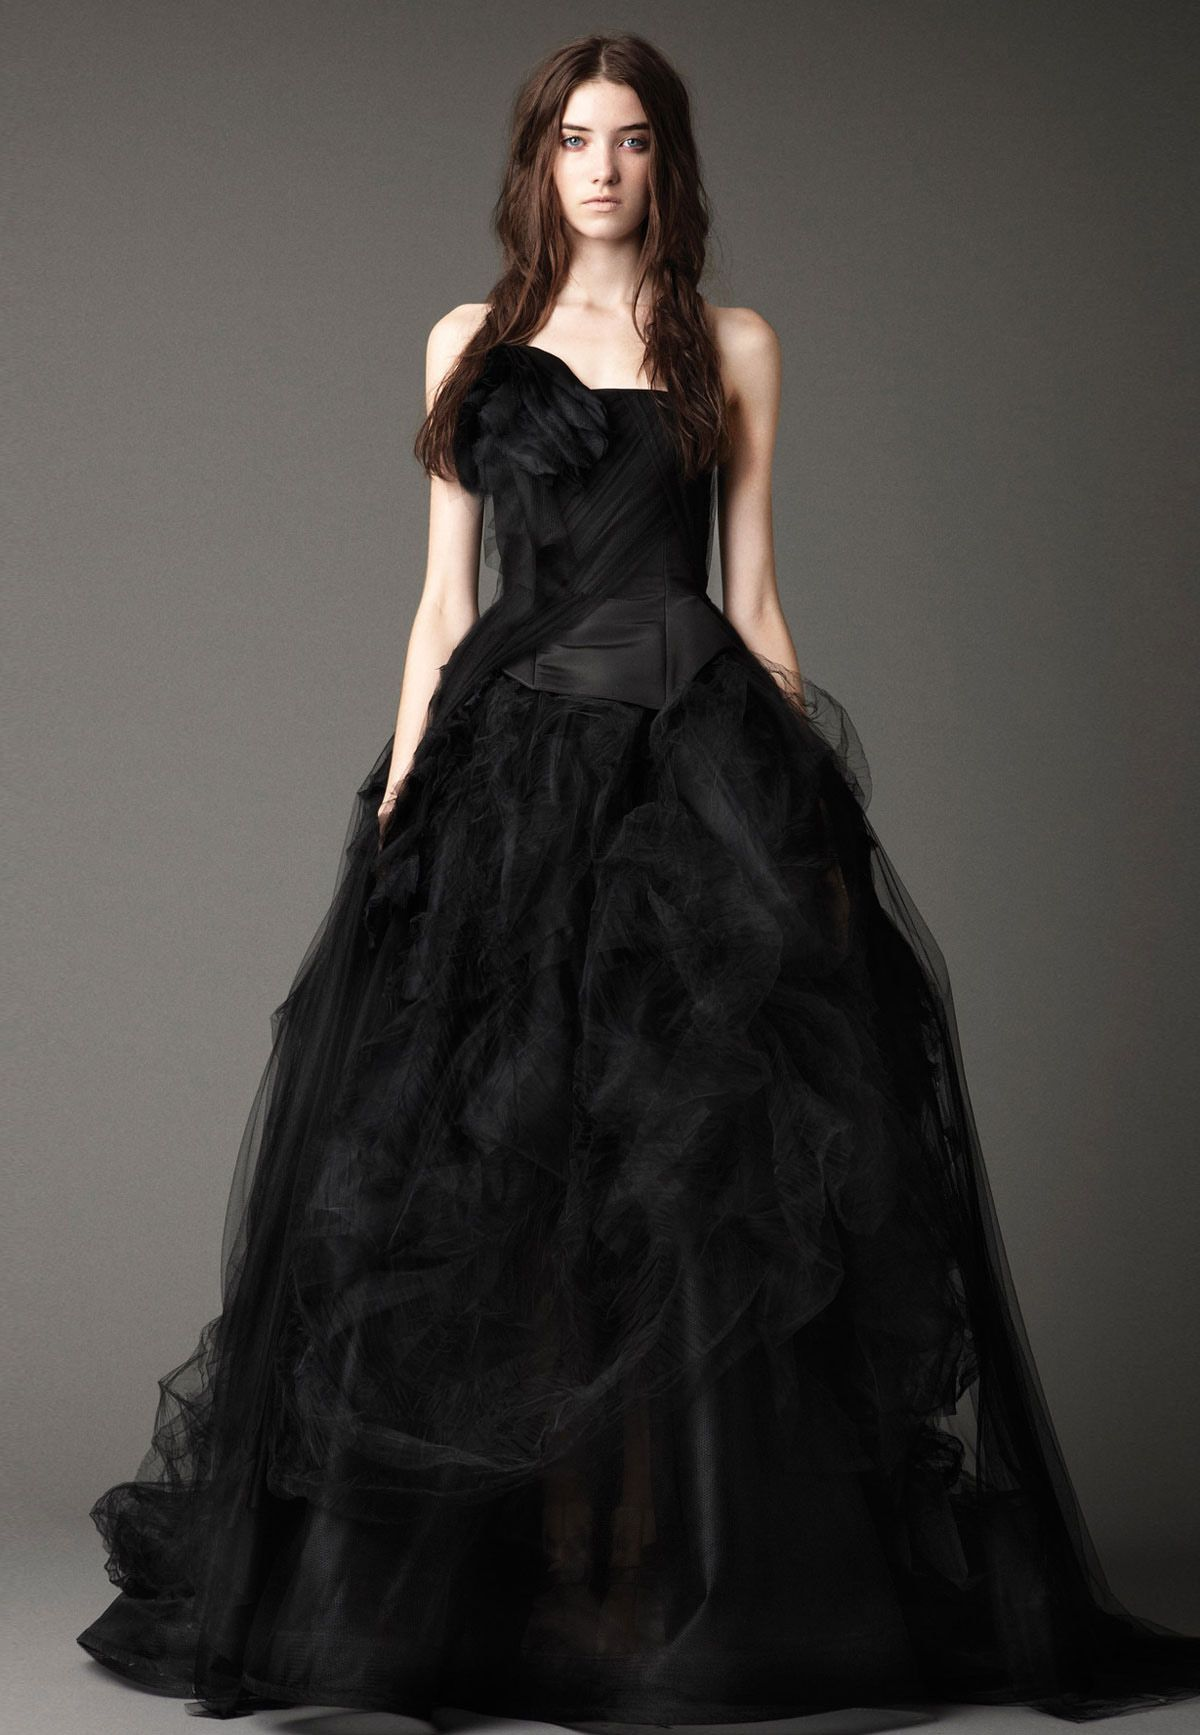 Gothic style wedding dresses  Inspiration for a Glamorous Purple and Black Gothic Style Wedding